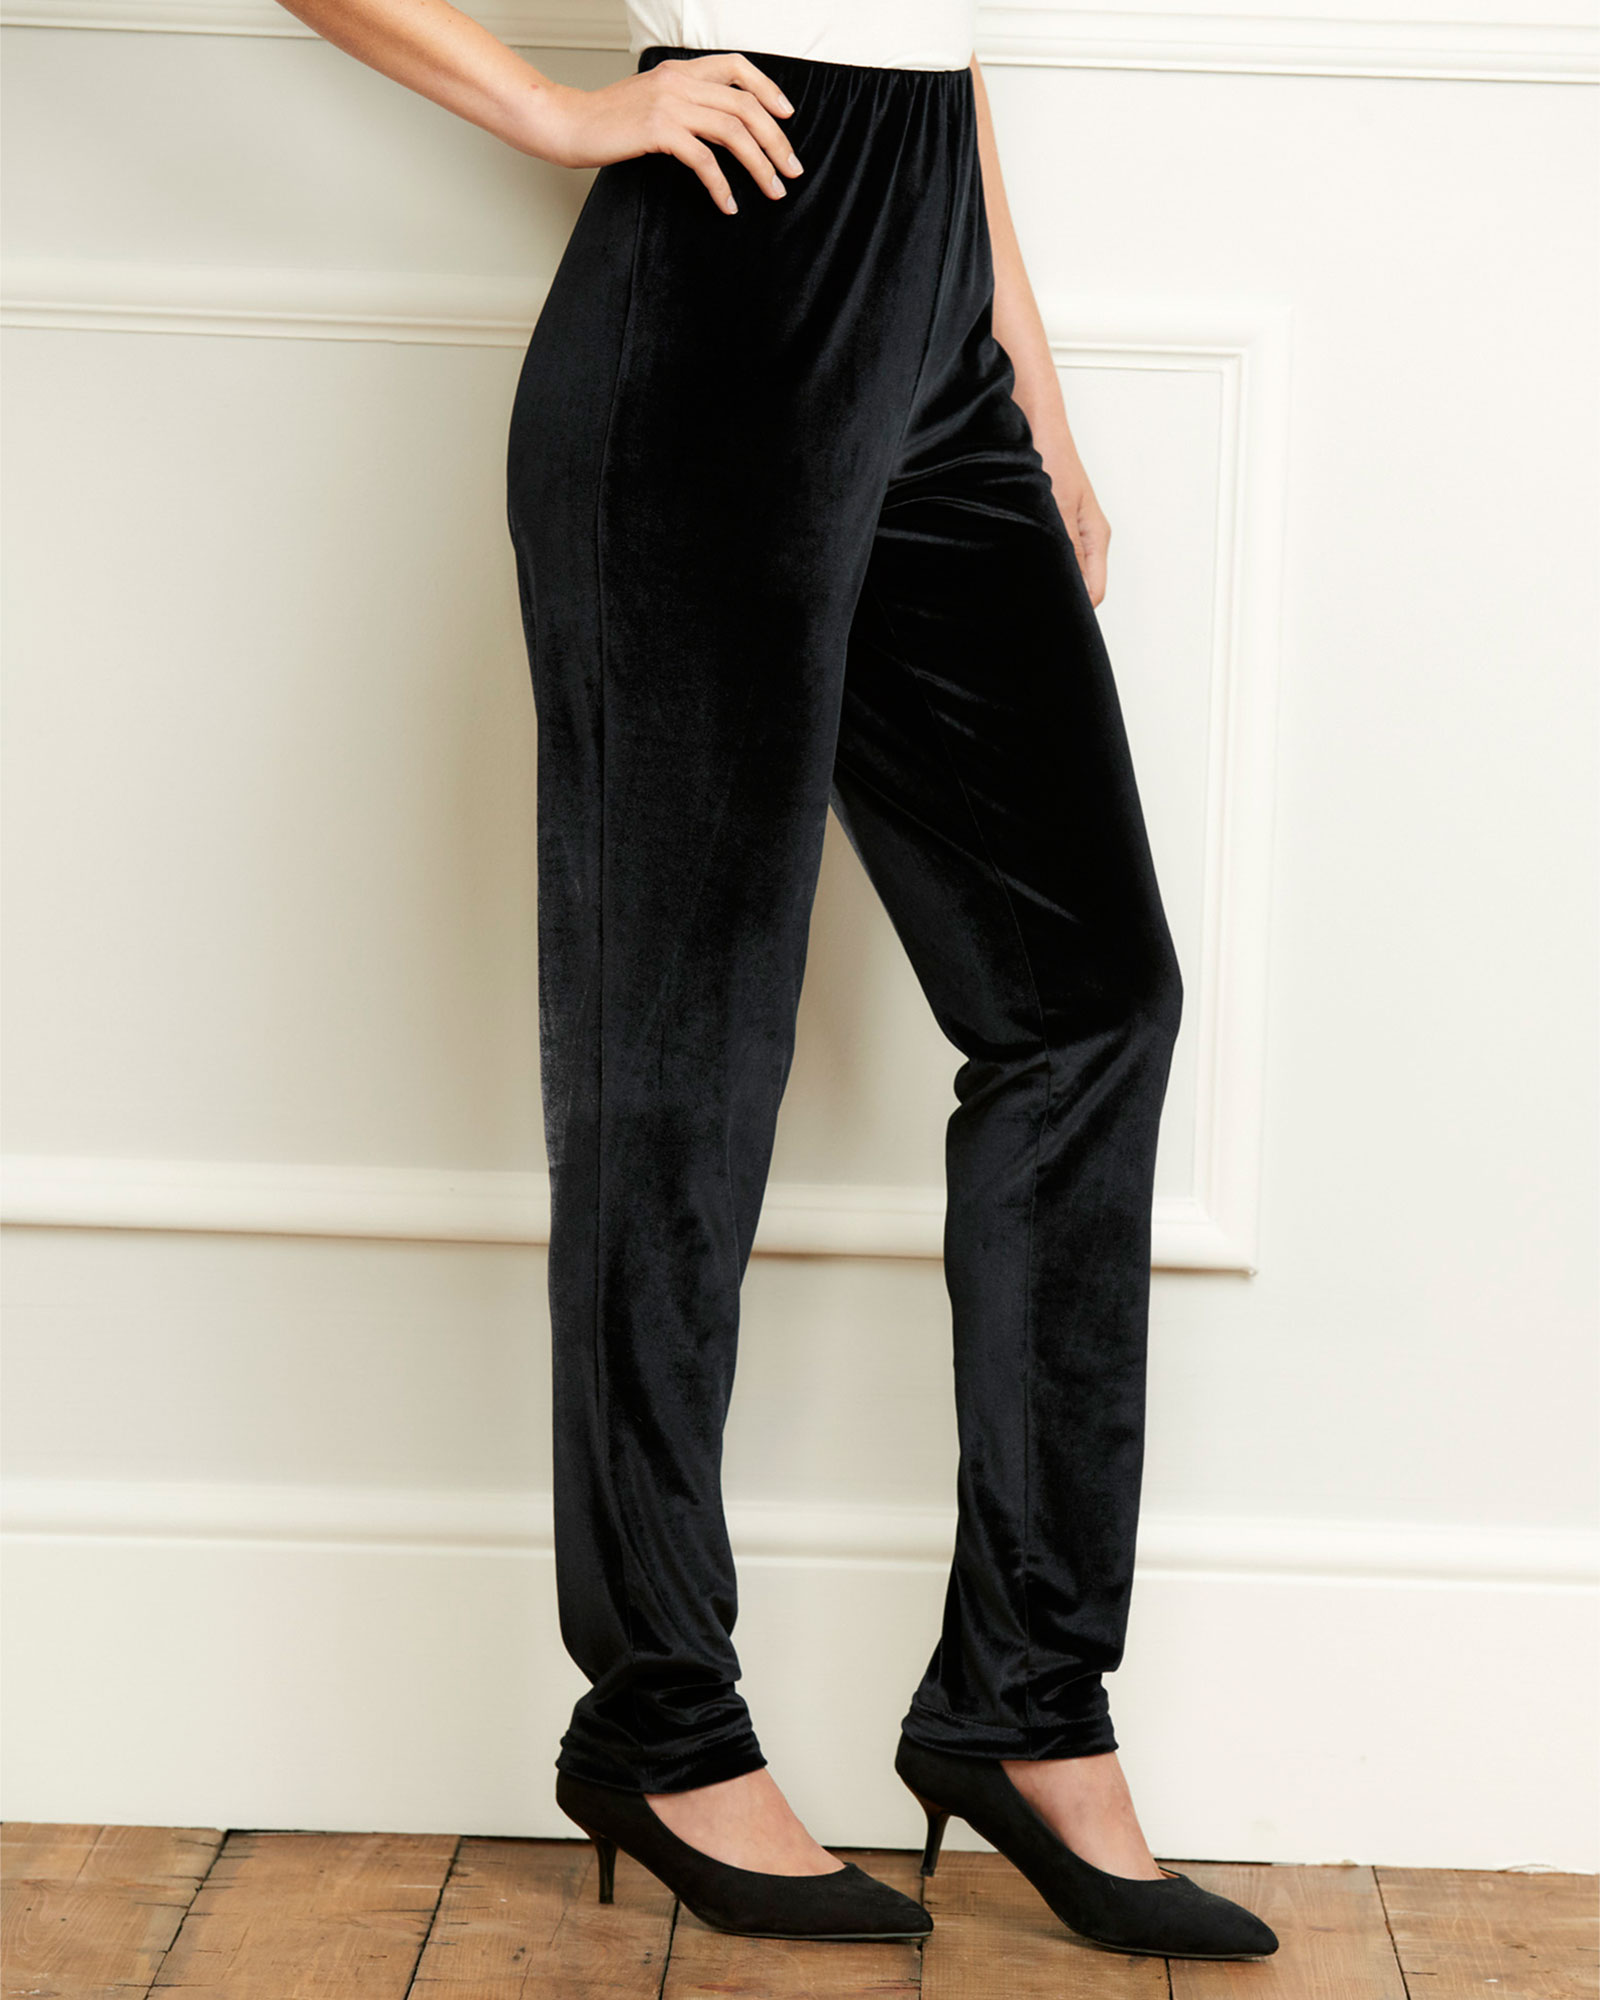 Cotton Traders Women's Velour Tapered Trousers in Black